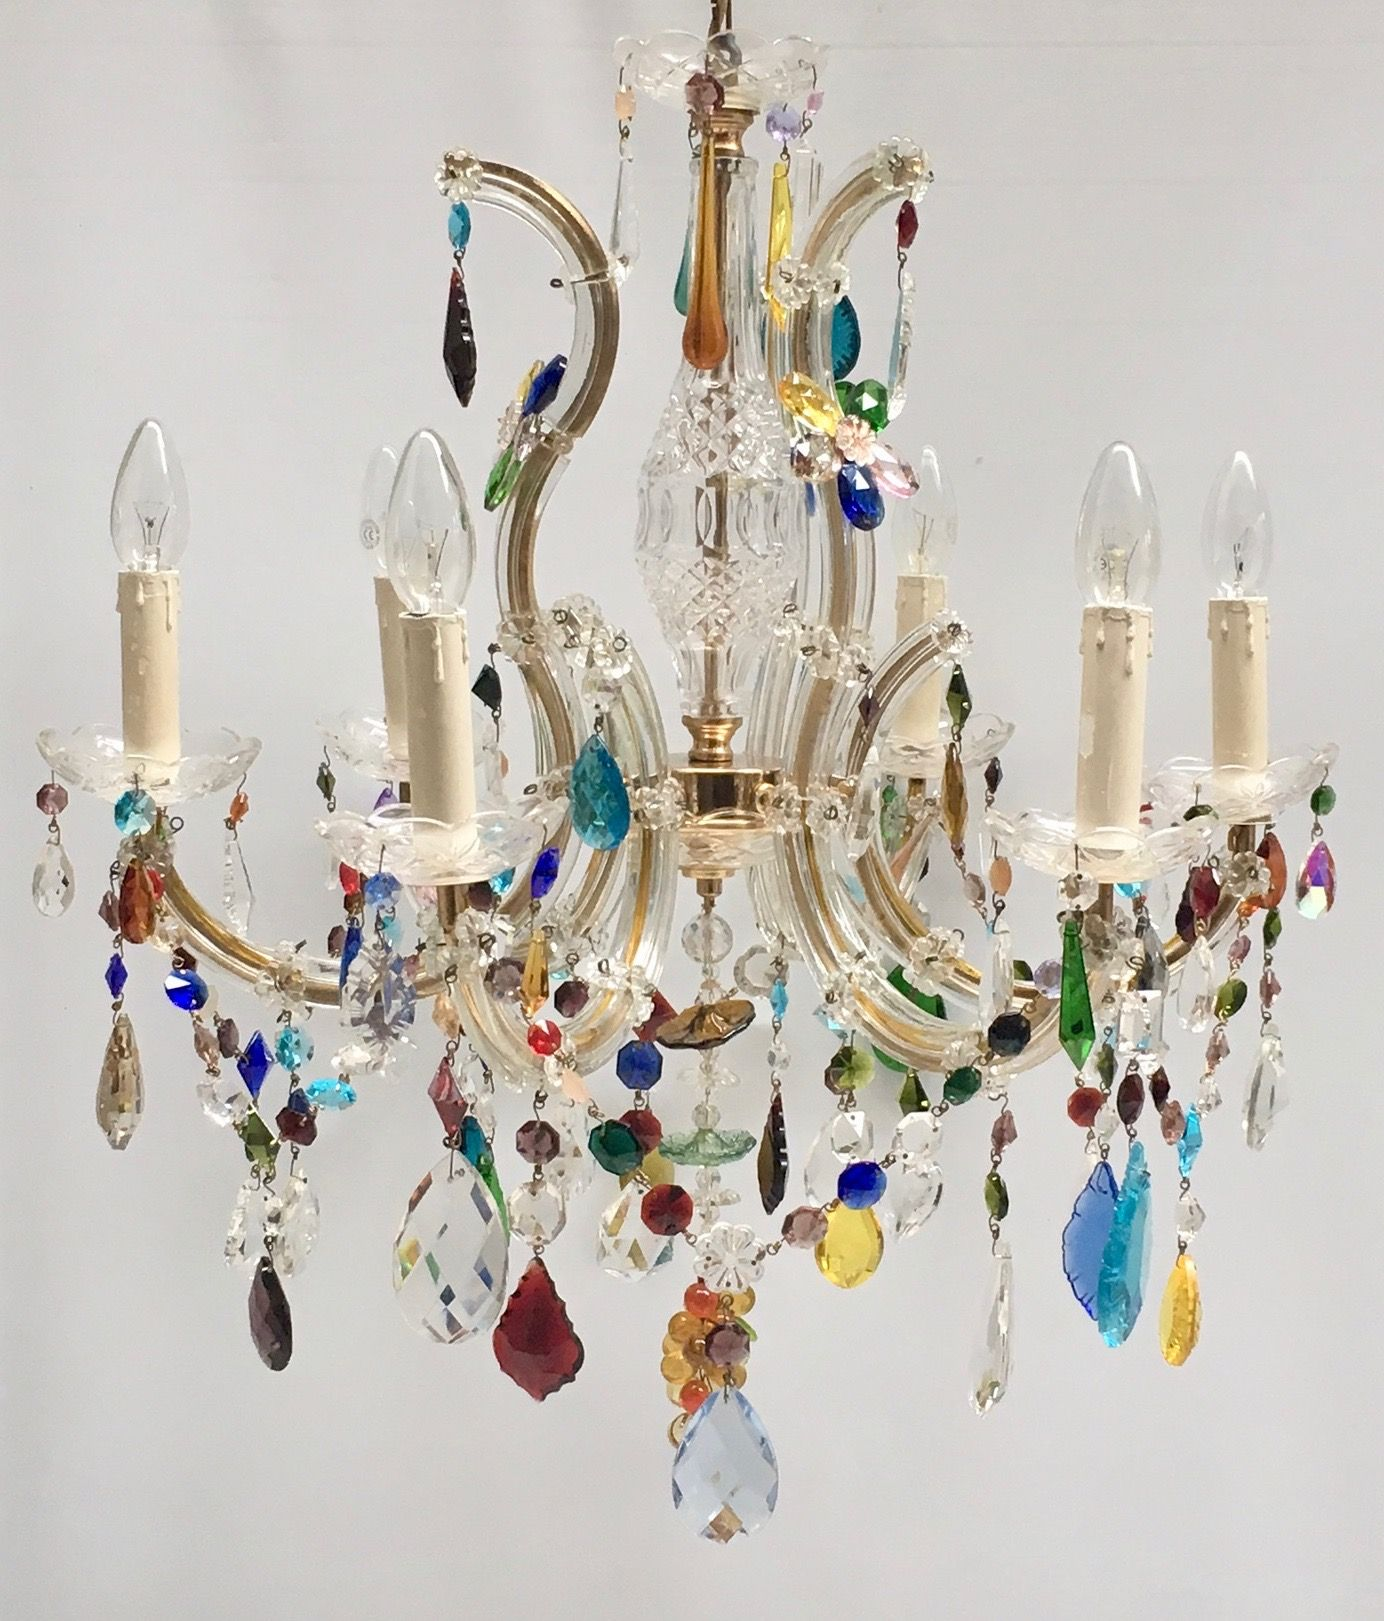 6 Arm Marie Therese Chandelier With Coloured Drops Flowers And Swags Measures 60cm Width X